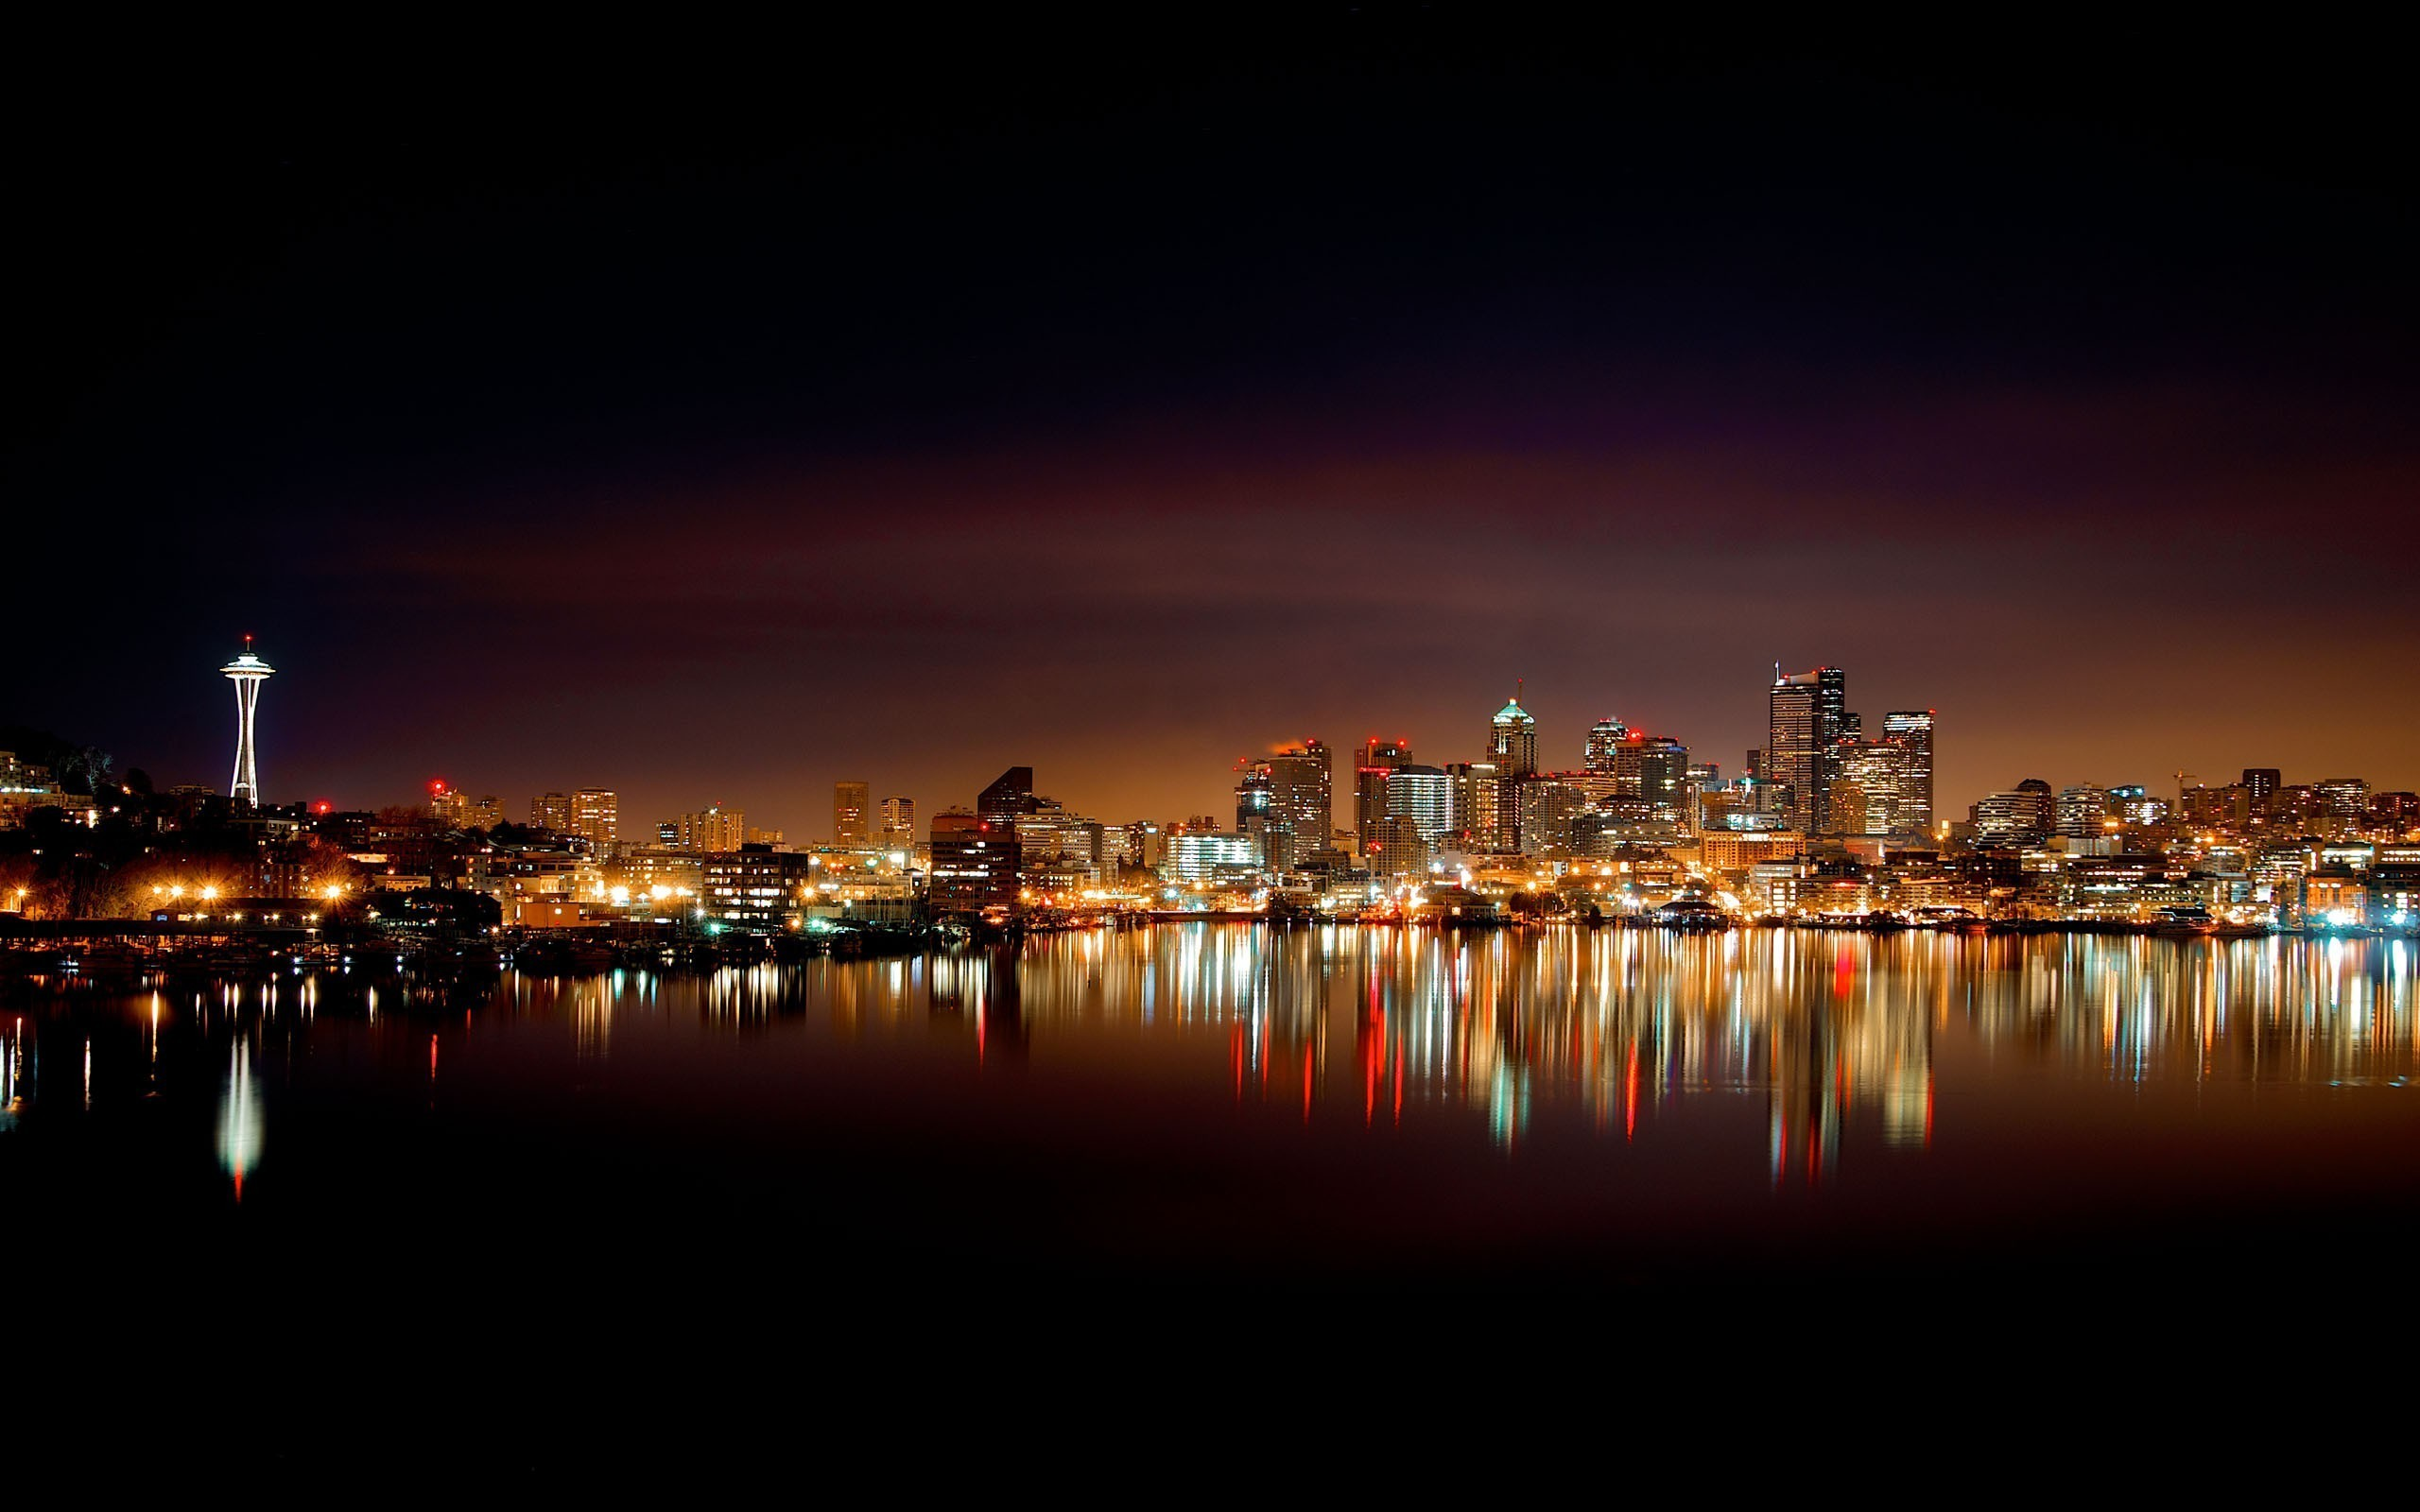 Res: 2560x1600, 3840x2160 HD Wallpaper   Background Image ID:888722. Man Made Seattle